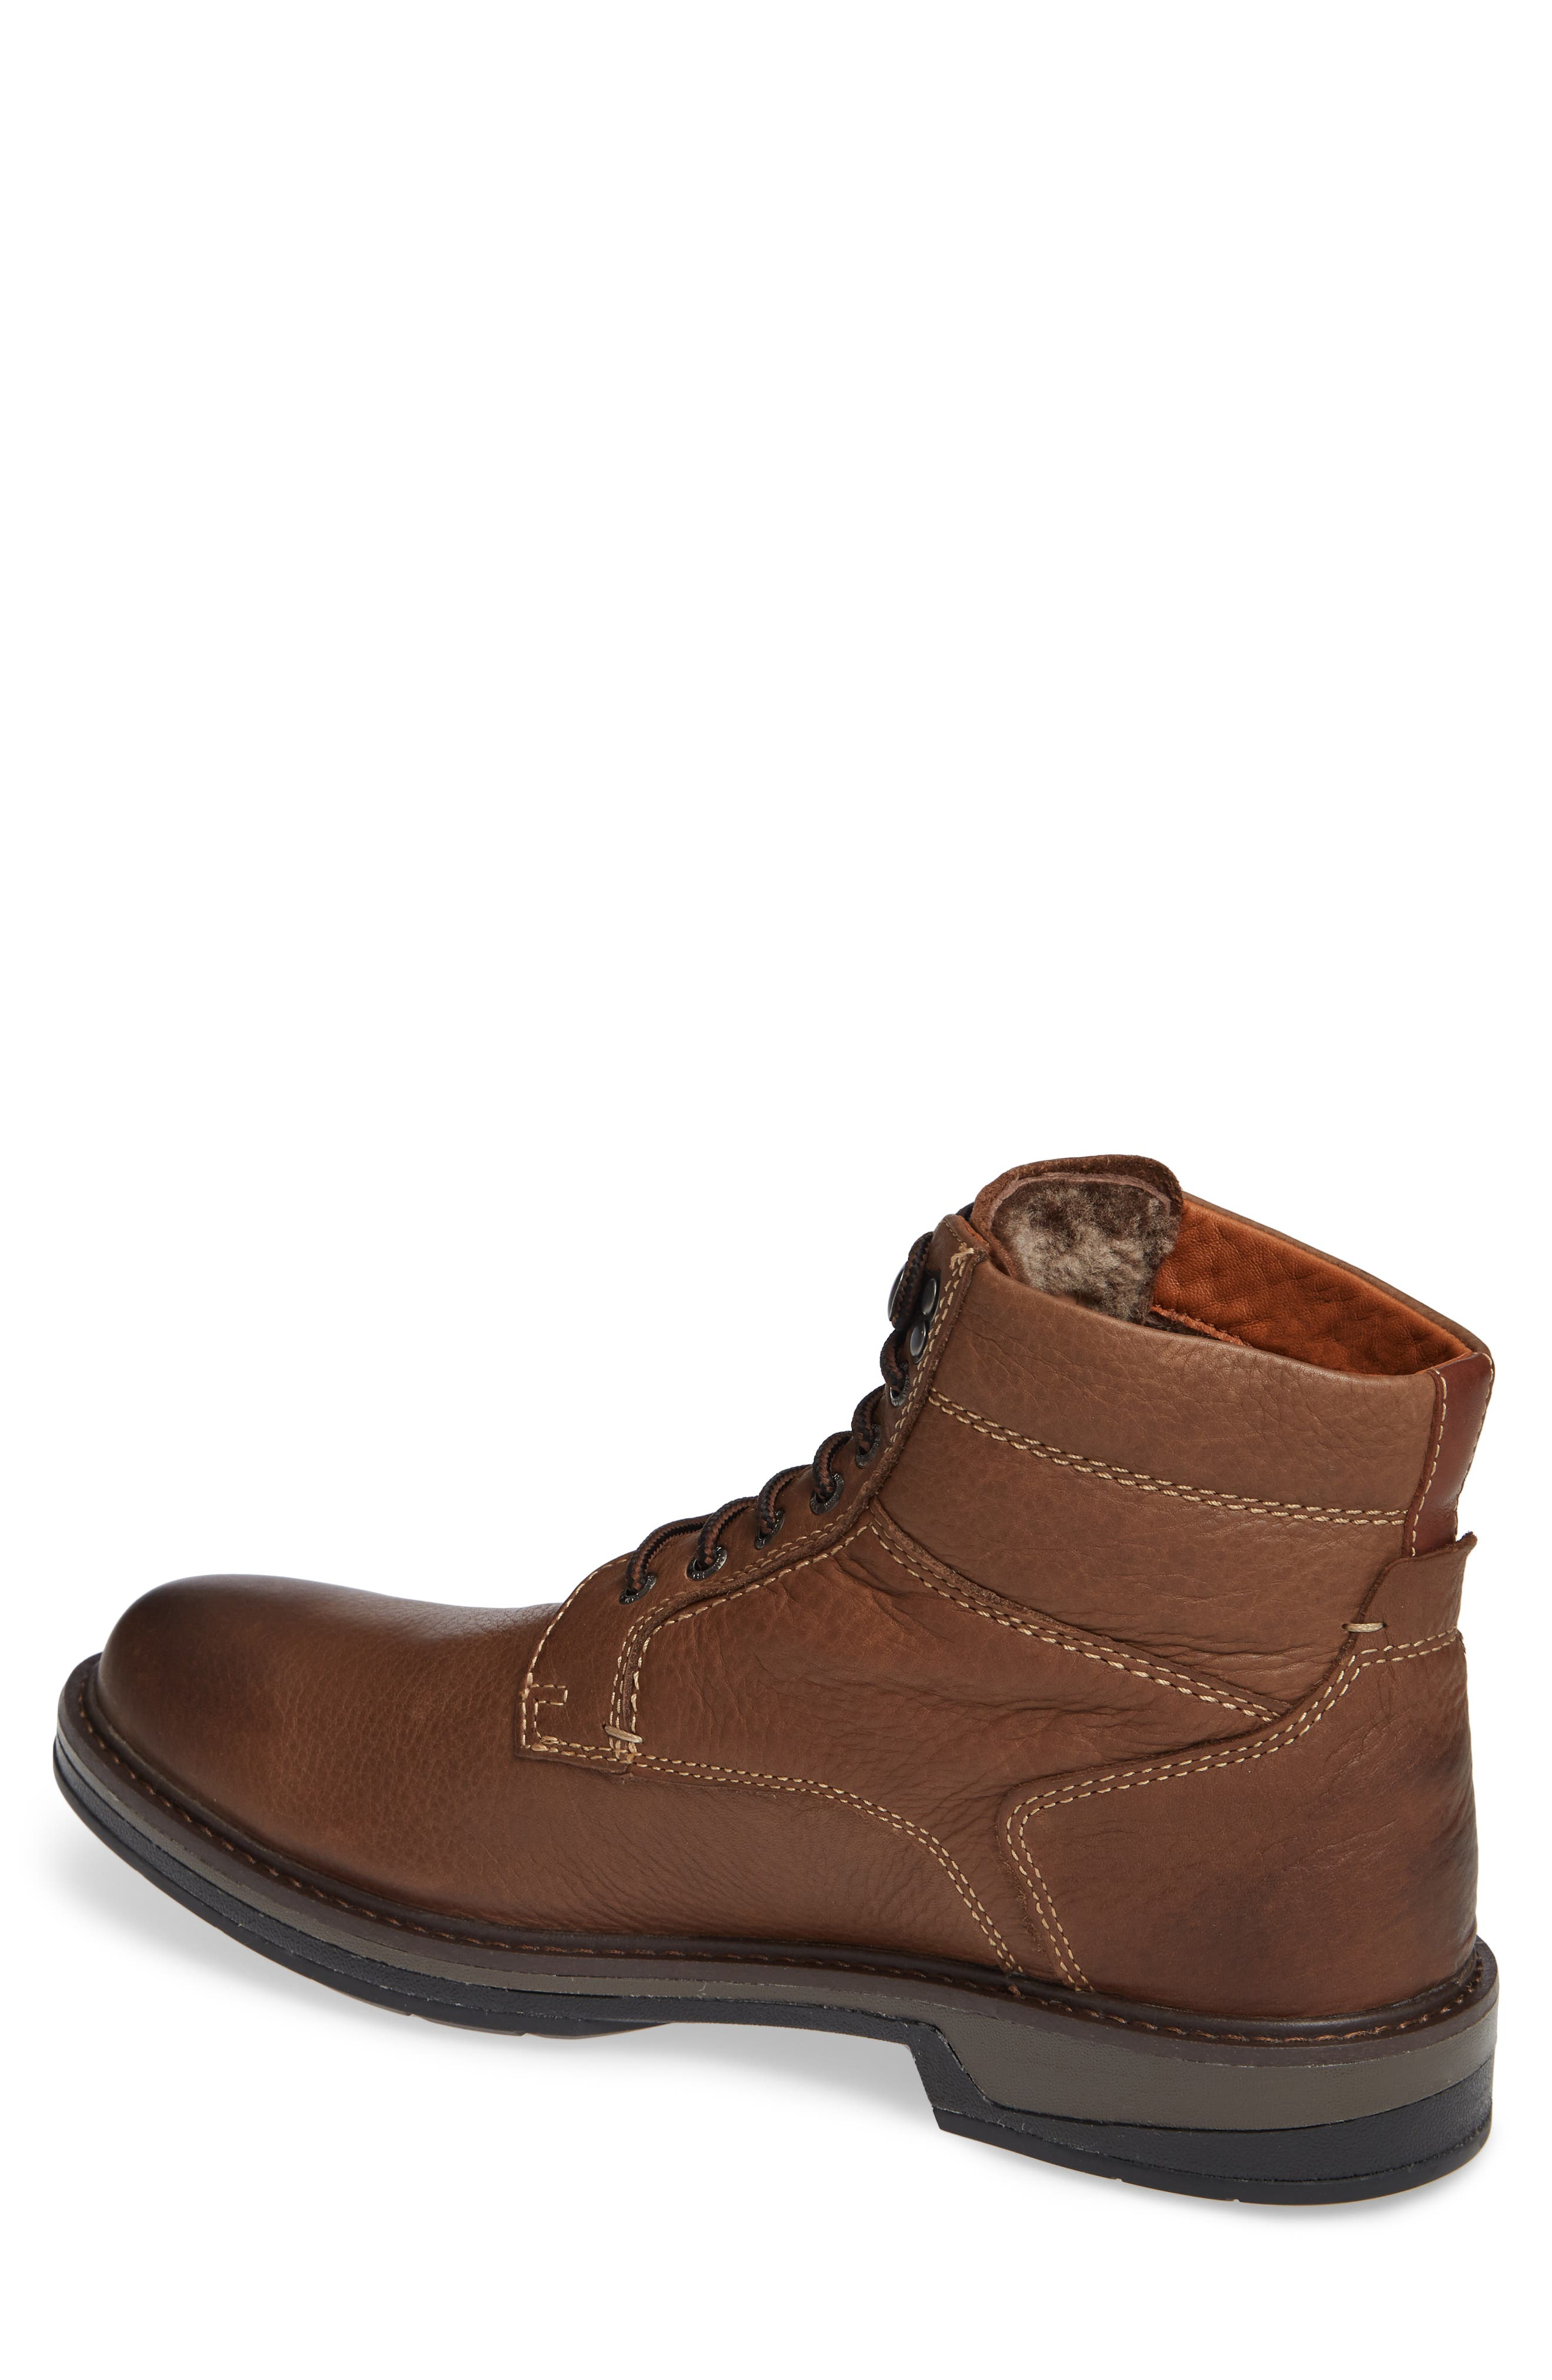 Rutledge Genuine Shearling Lined Waterproof Boot,                             Alternate thumbnail 2, color,                             BROWN OILED LEATHER